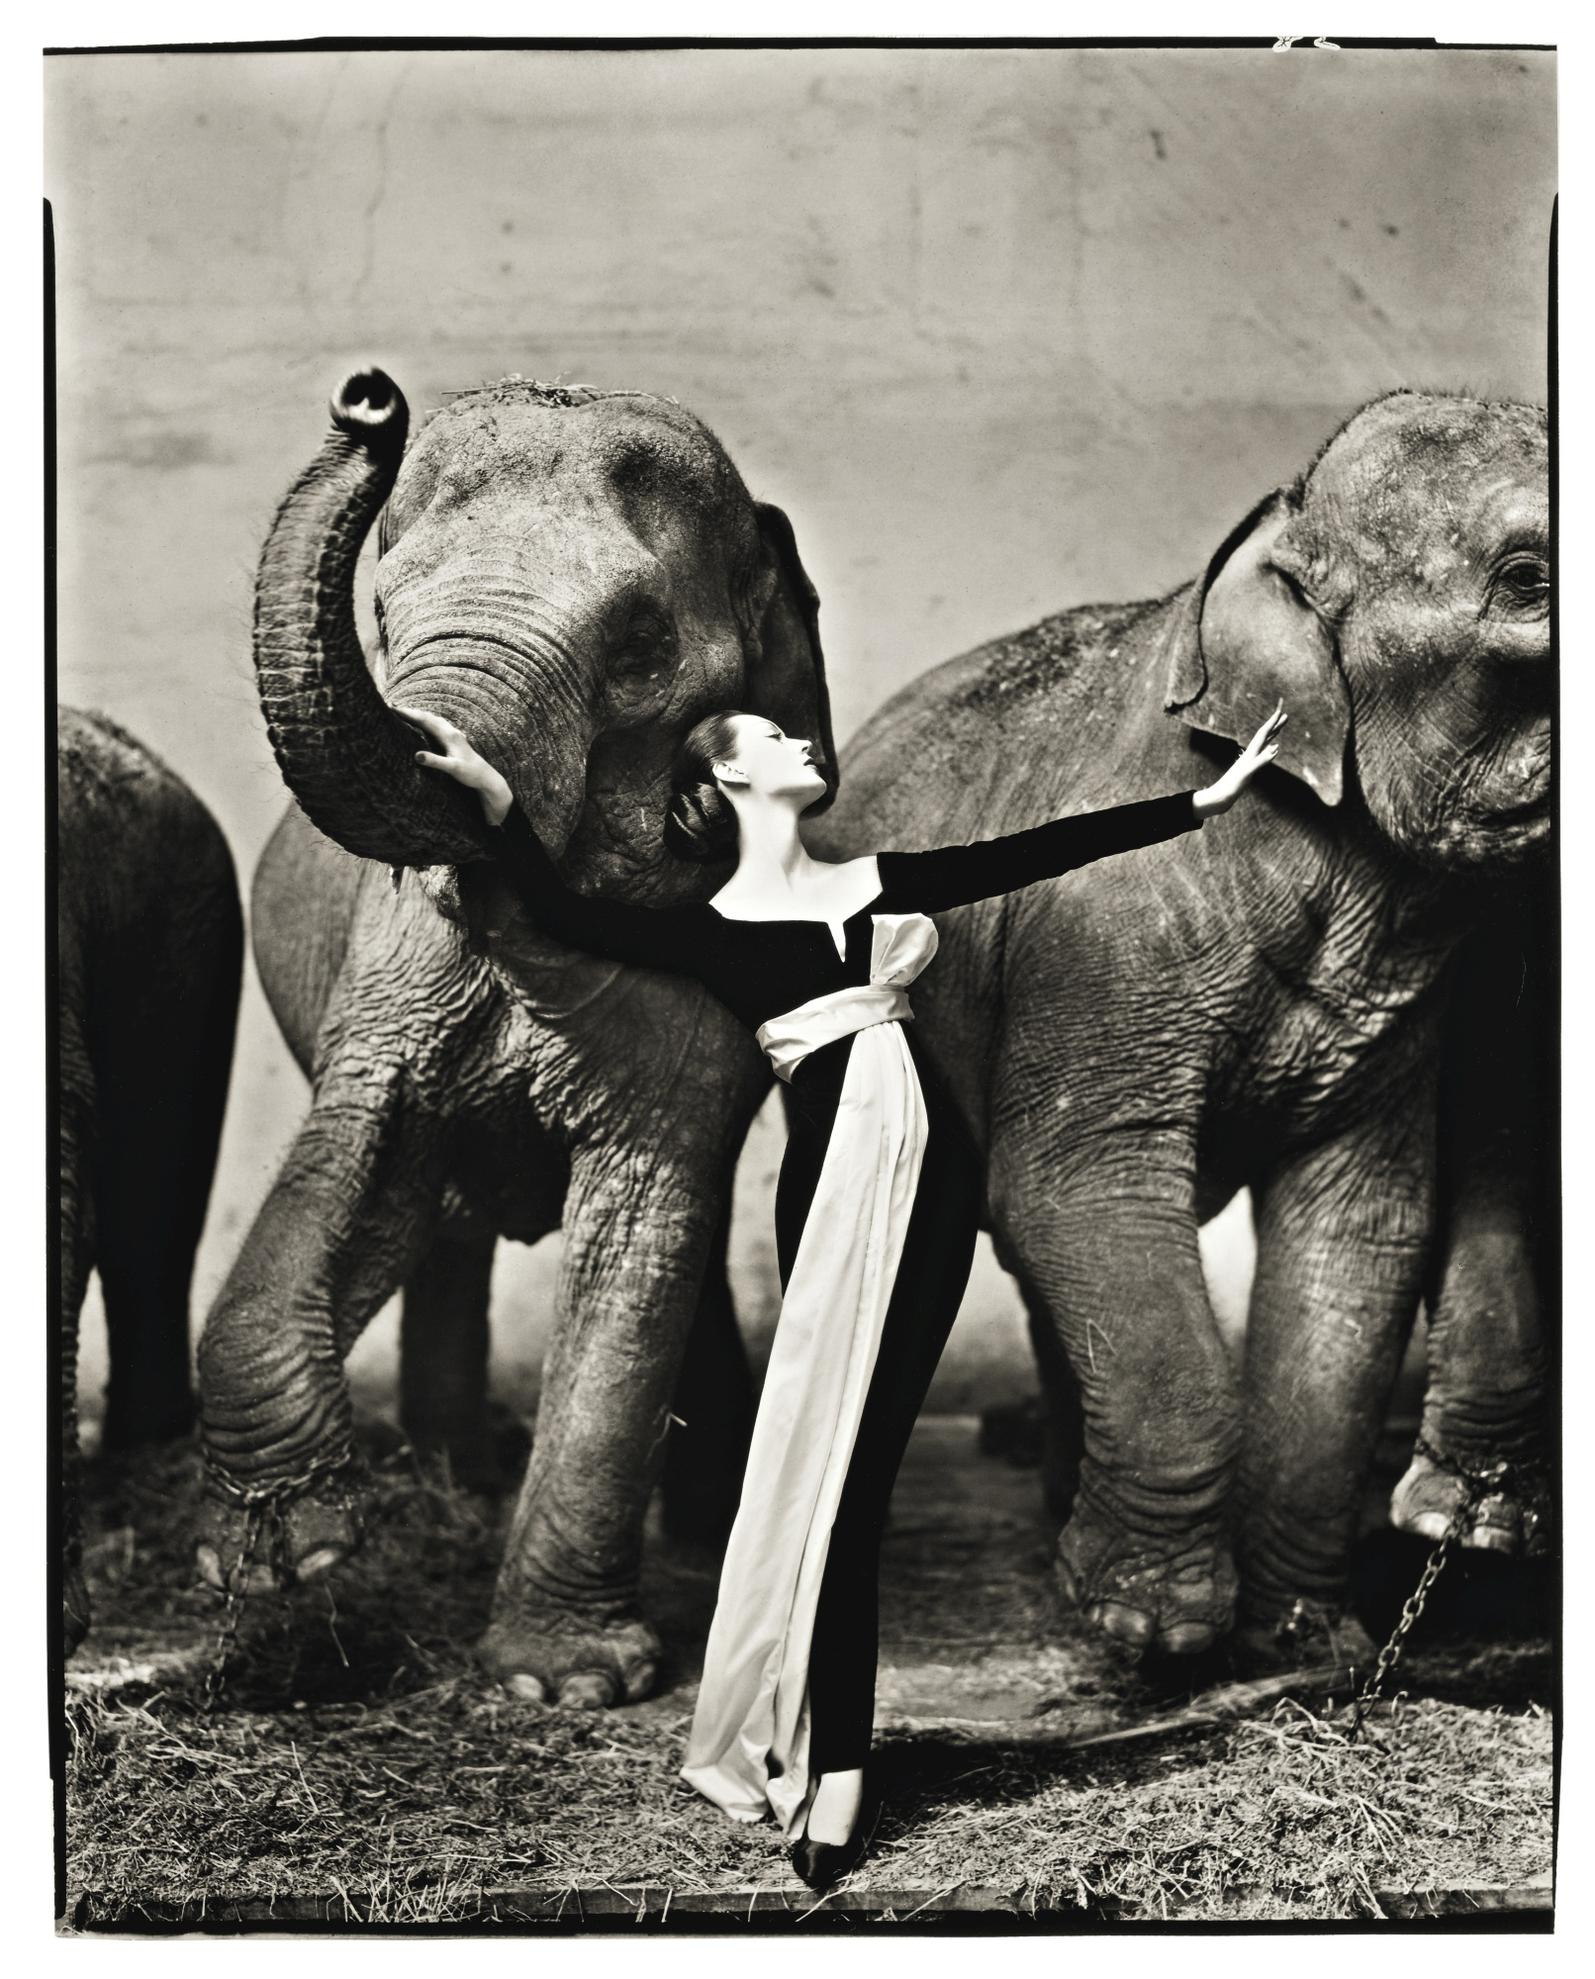 Richard Avedon-Dovima With Elephants, Evening Dress By Dior, Cirque Dhiver, Paris-1955